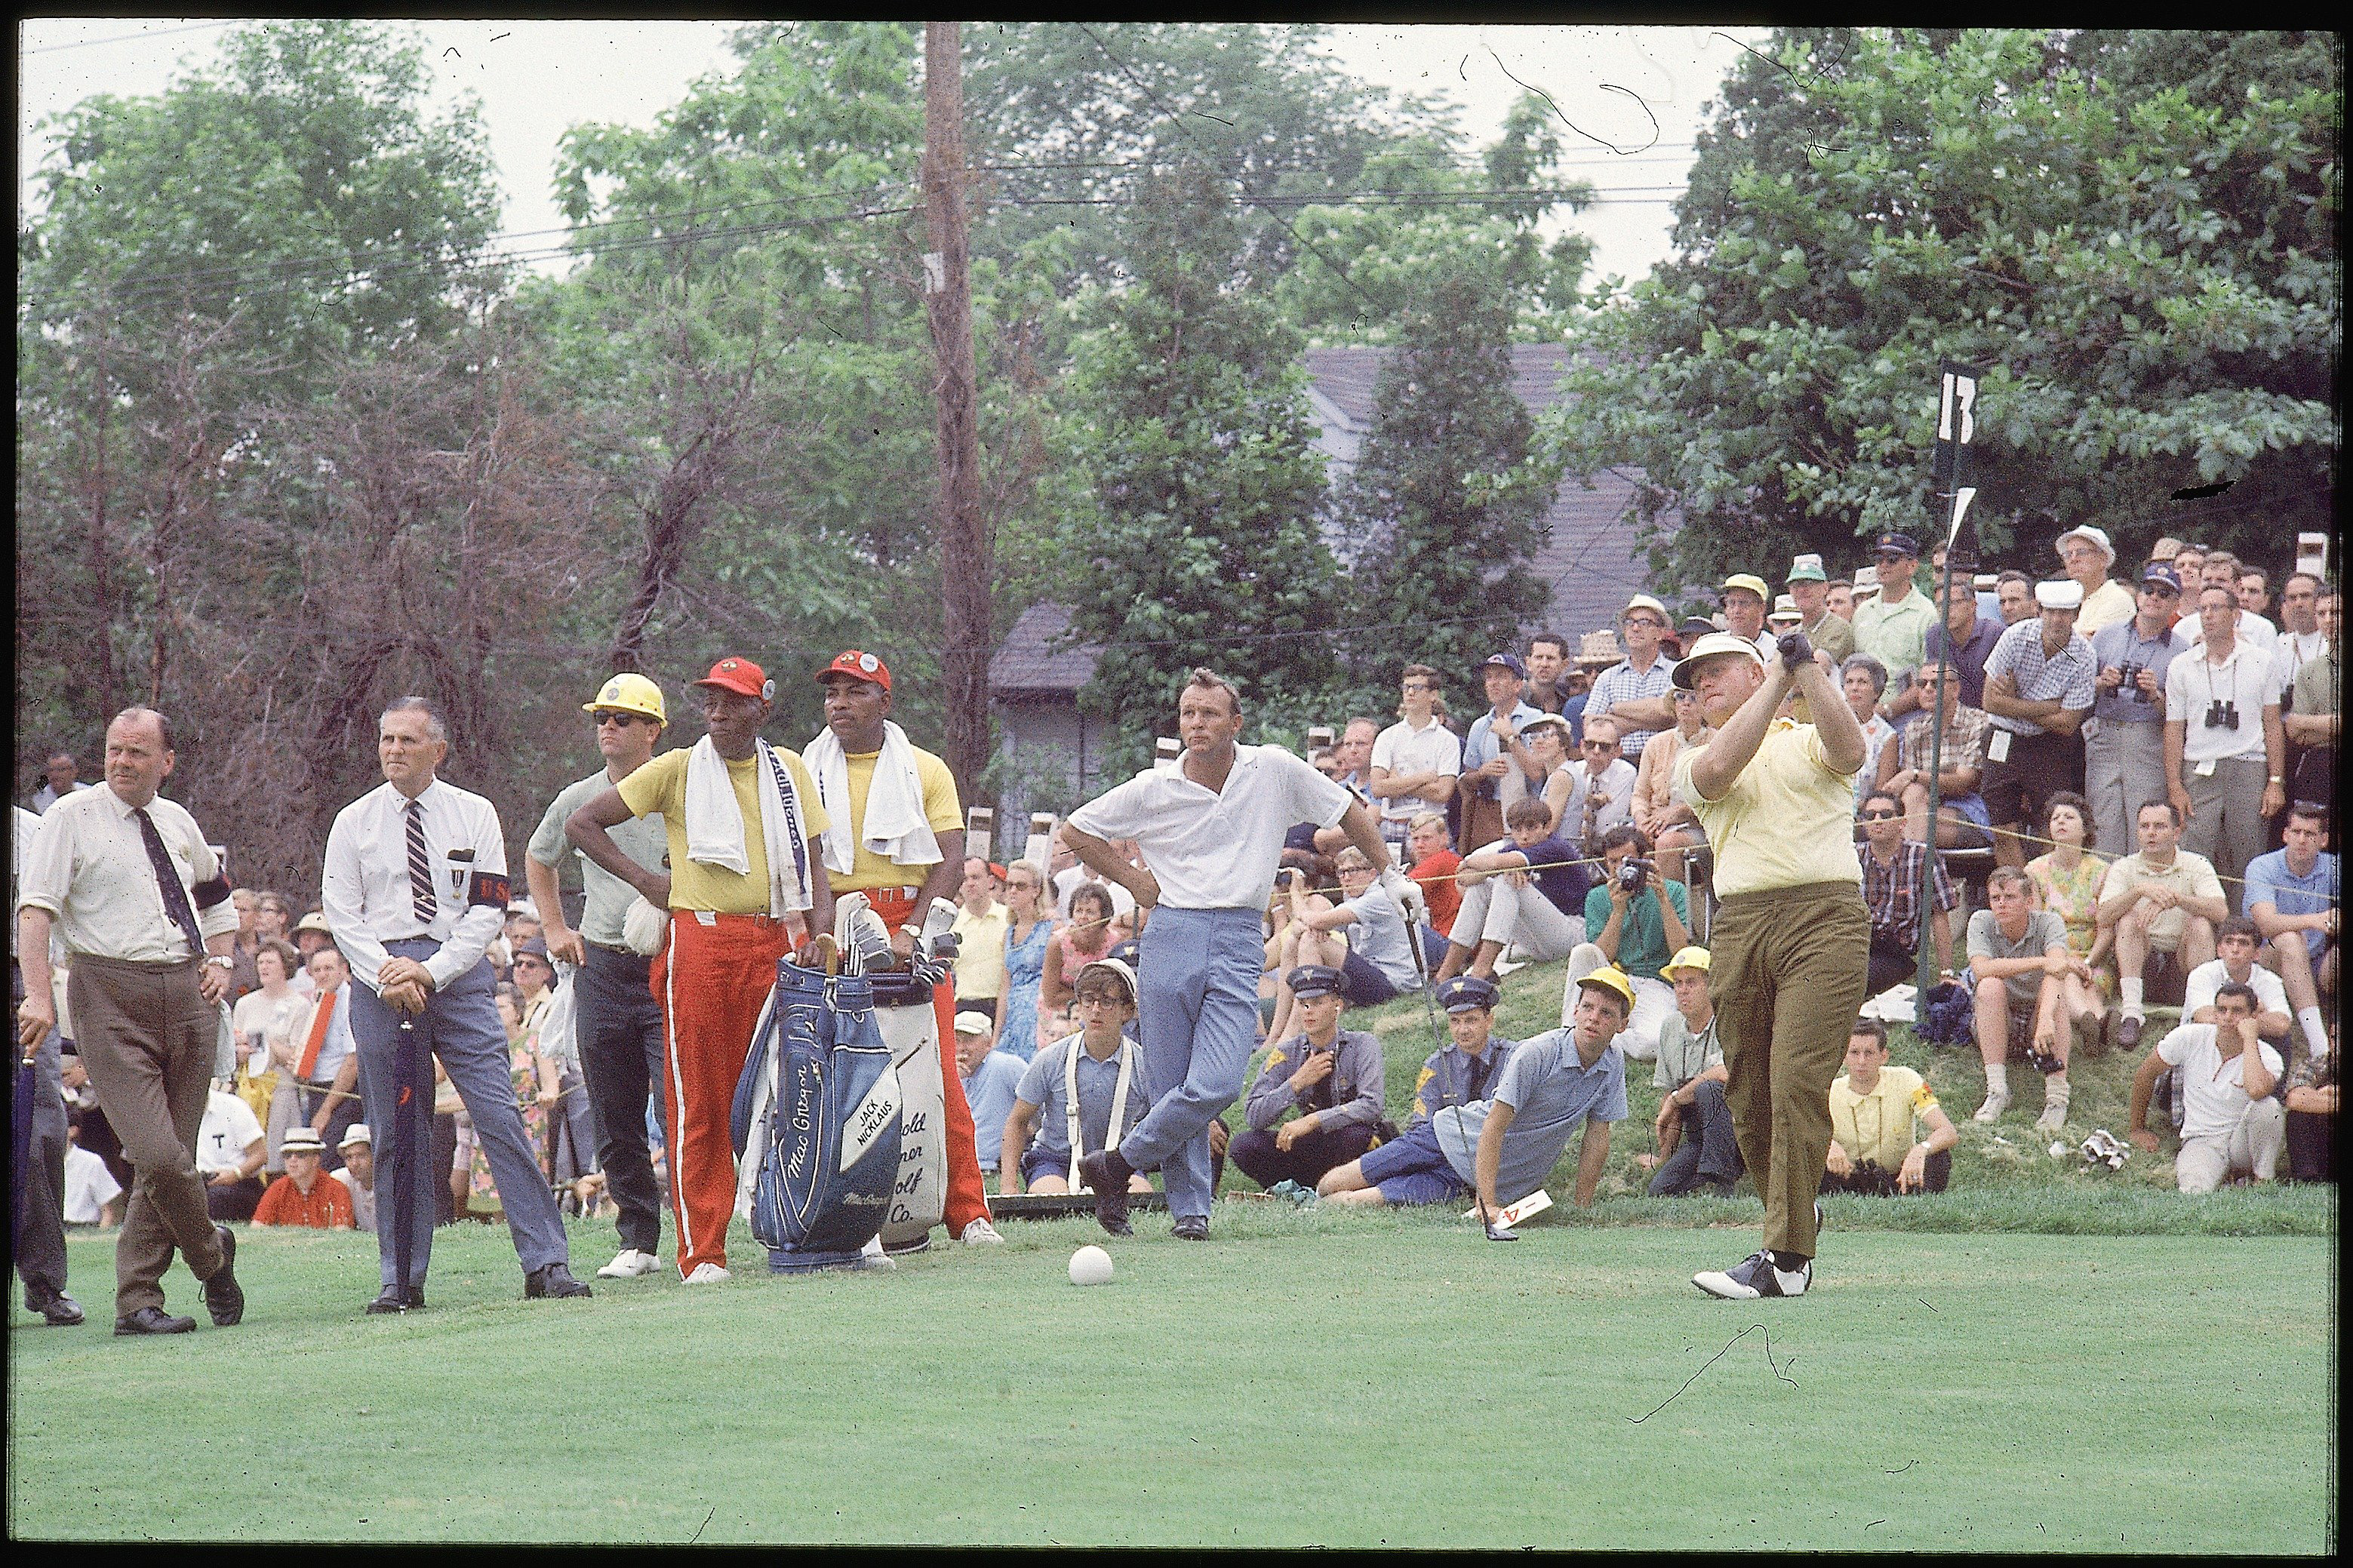 Jack Nicklaus driving as Arnold Palmer looks on at the 1967 U.S. Open